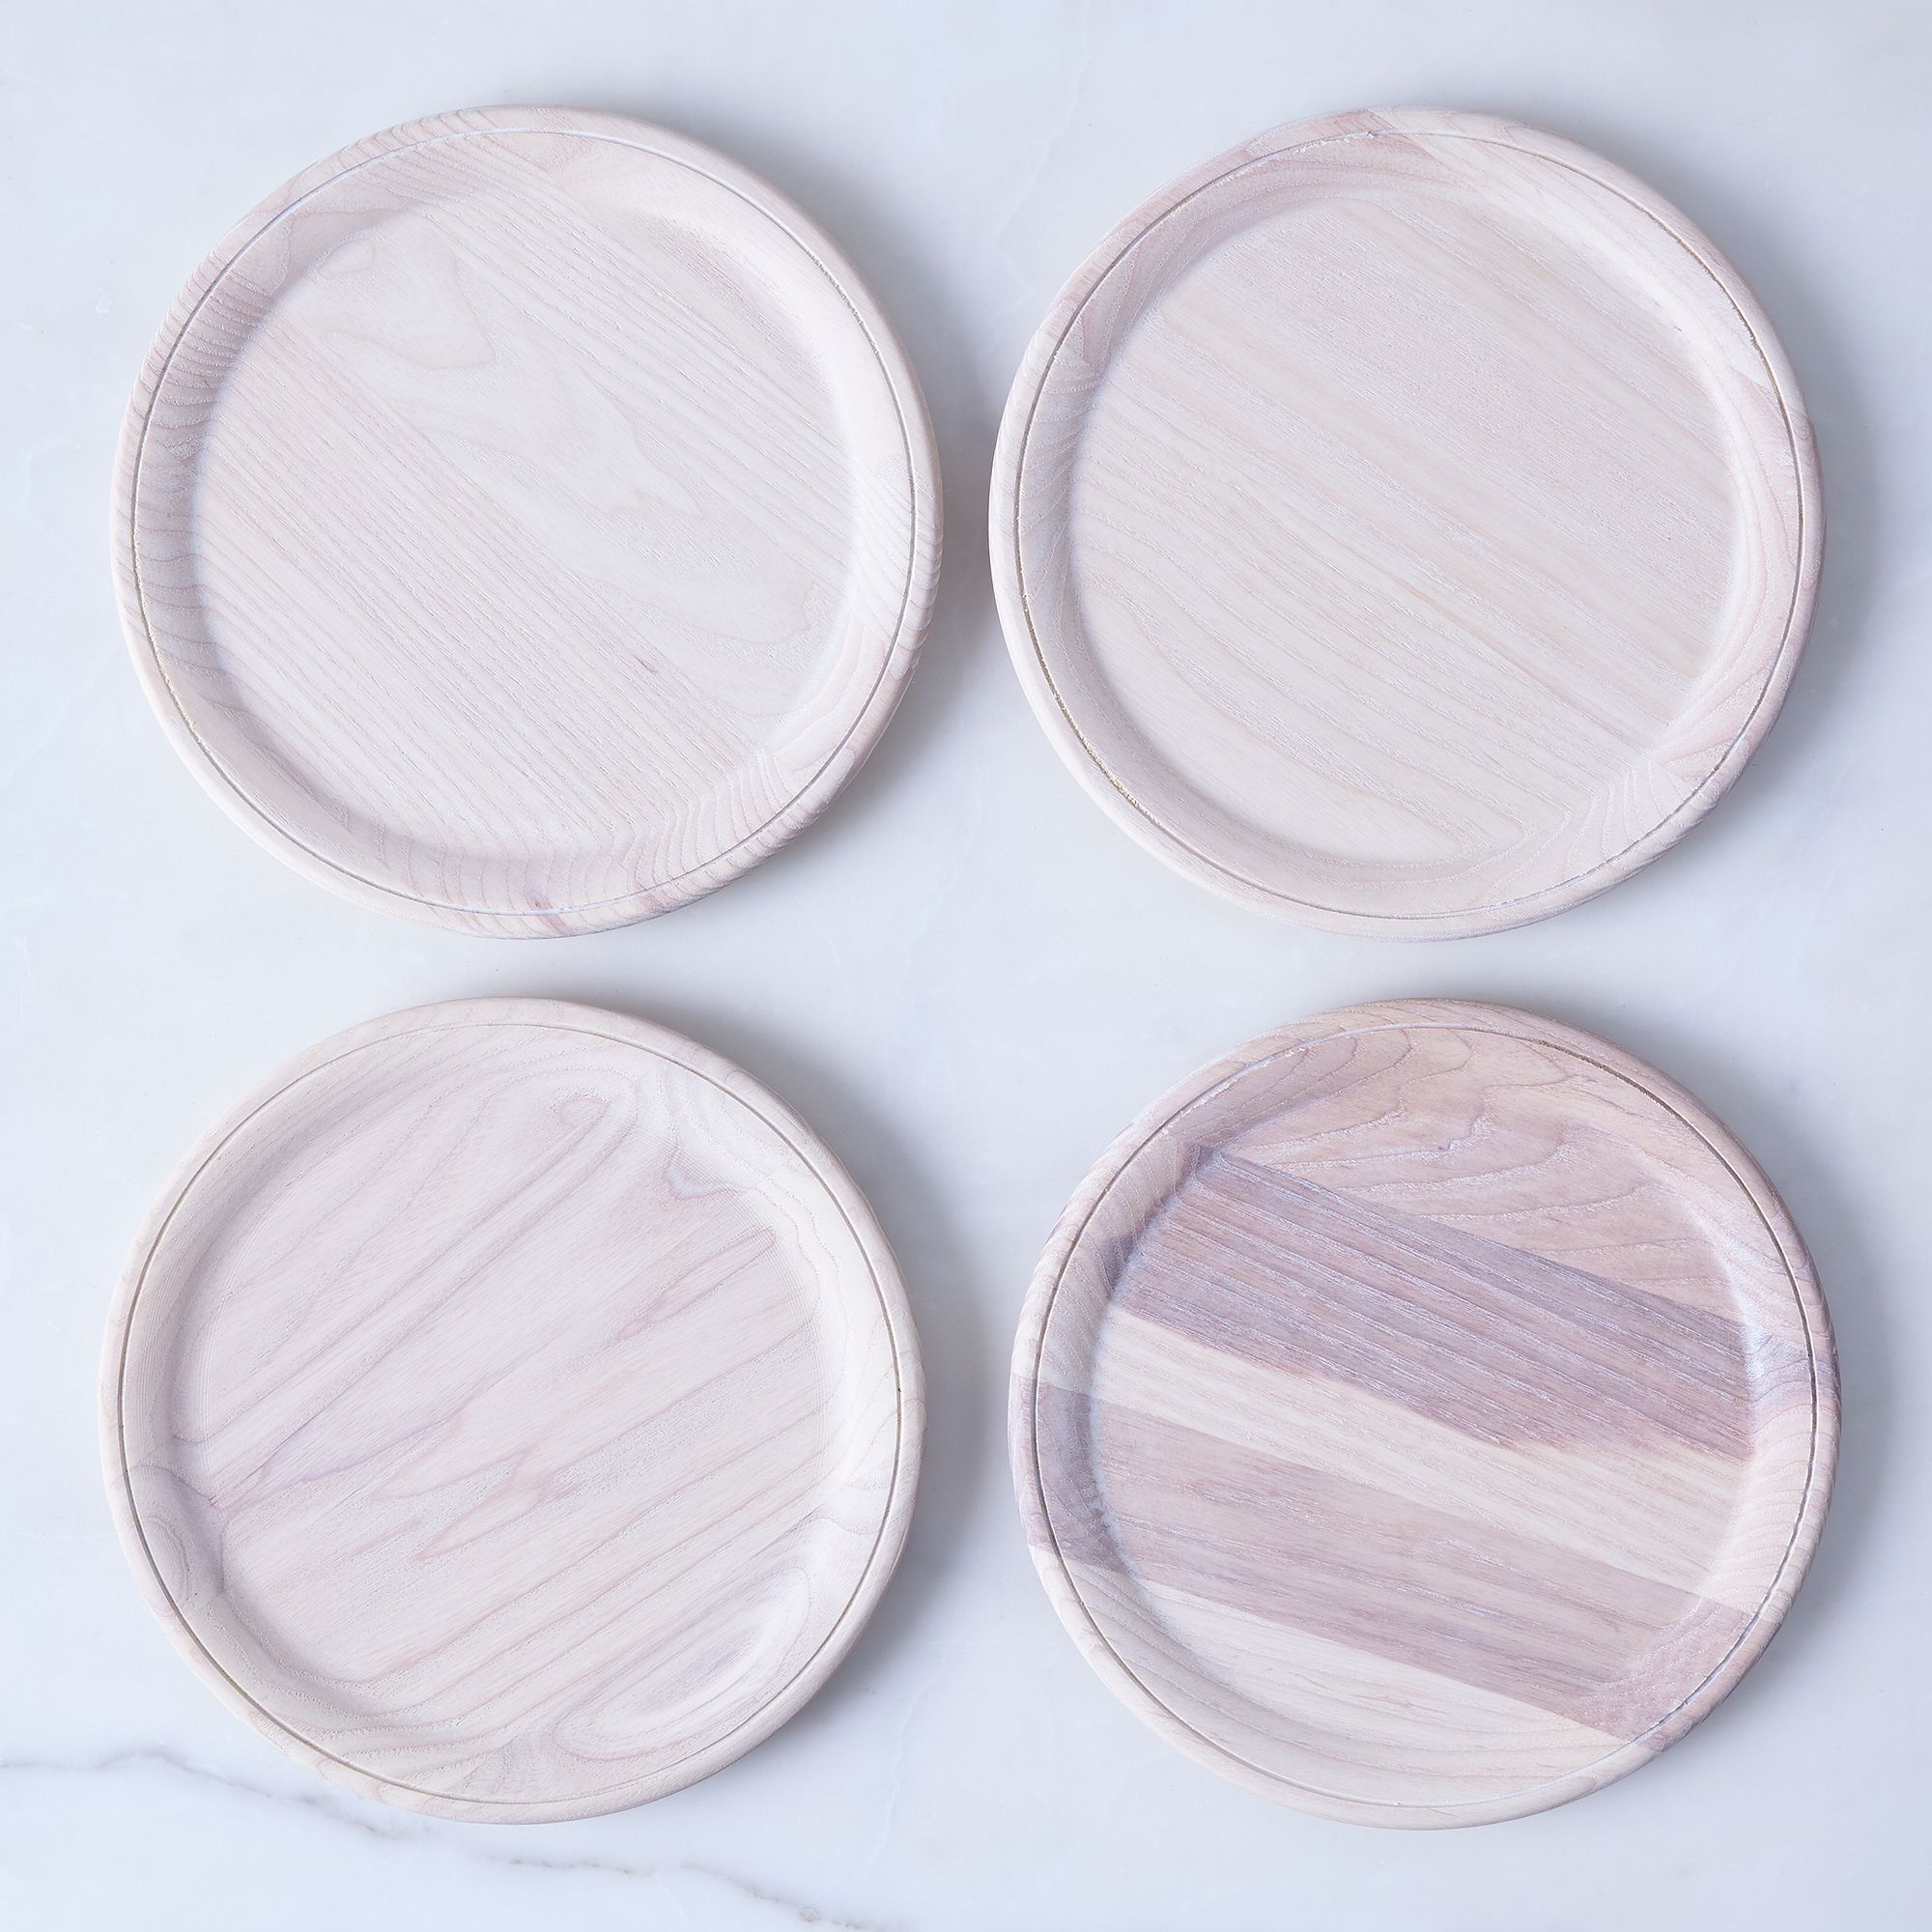 E06aa4c4 dc16 4498 b11f be964924eb83  2016 1011 farmhouse pottery crafted wooden plates white set of 4 silo rocky luten 1076